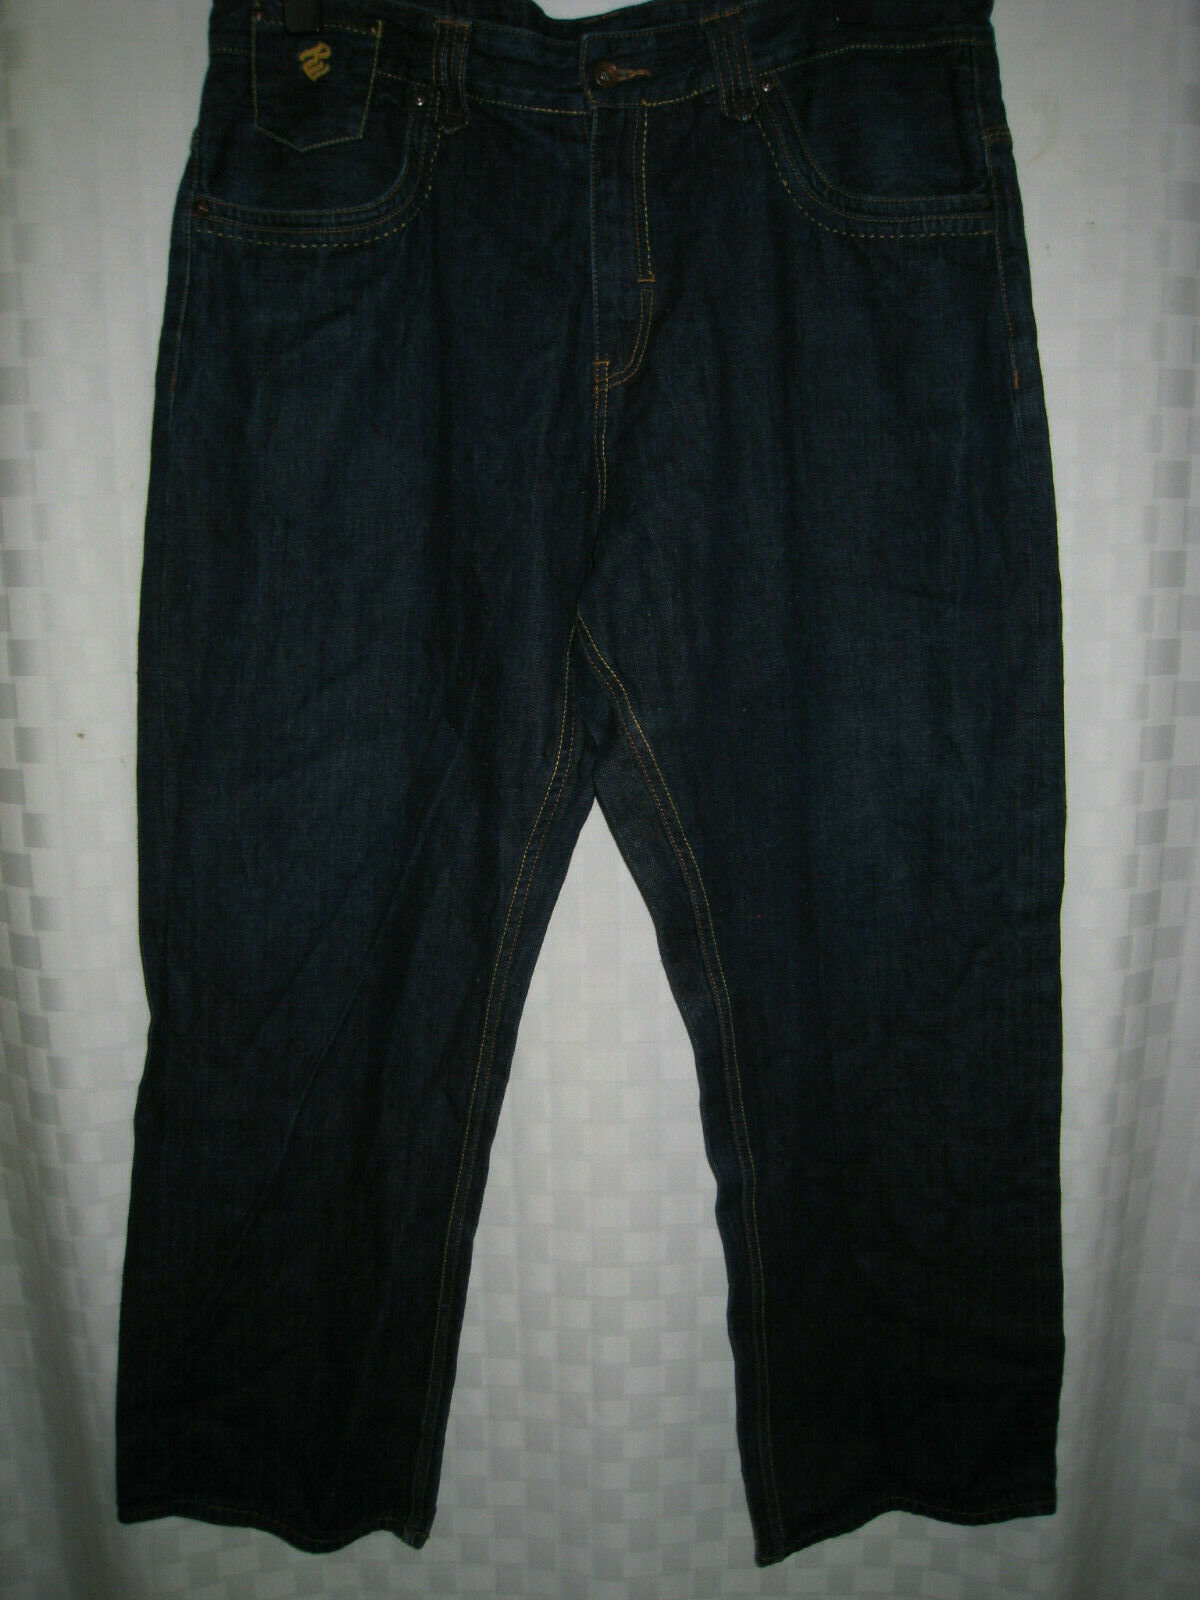 ROCAWEAR DENIM CO.blueE JEANS PANTS  MEN SIZE 42  x 33  NICE RARE